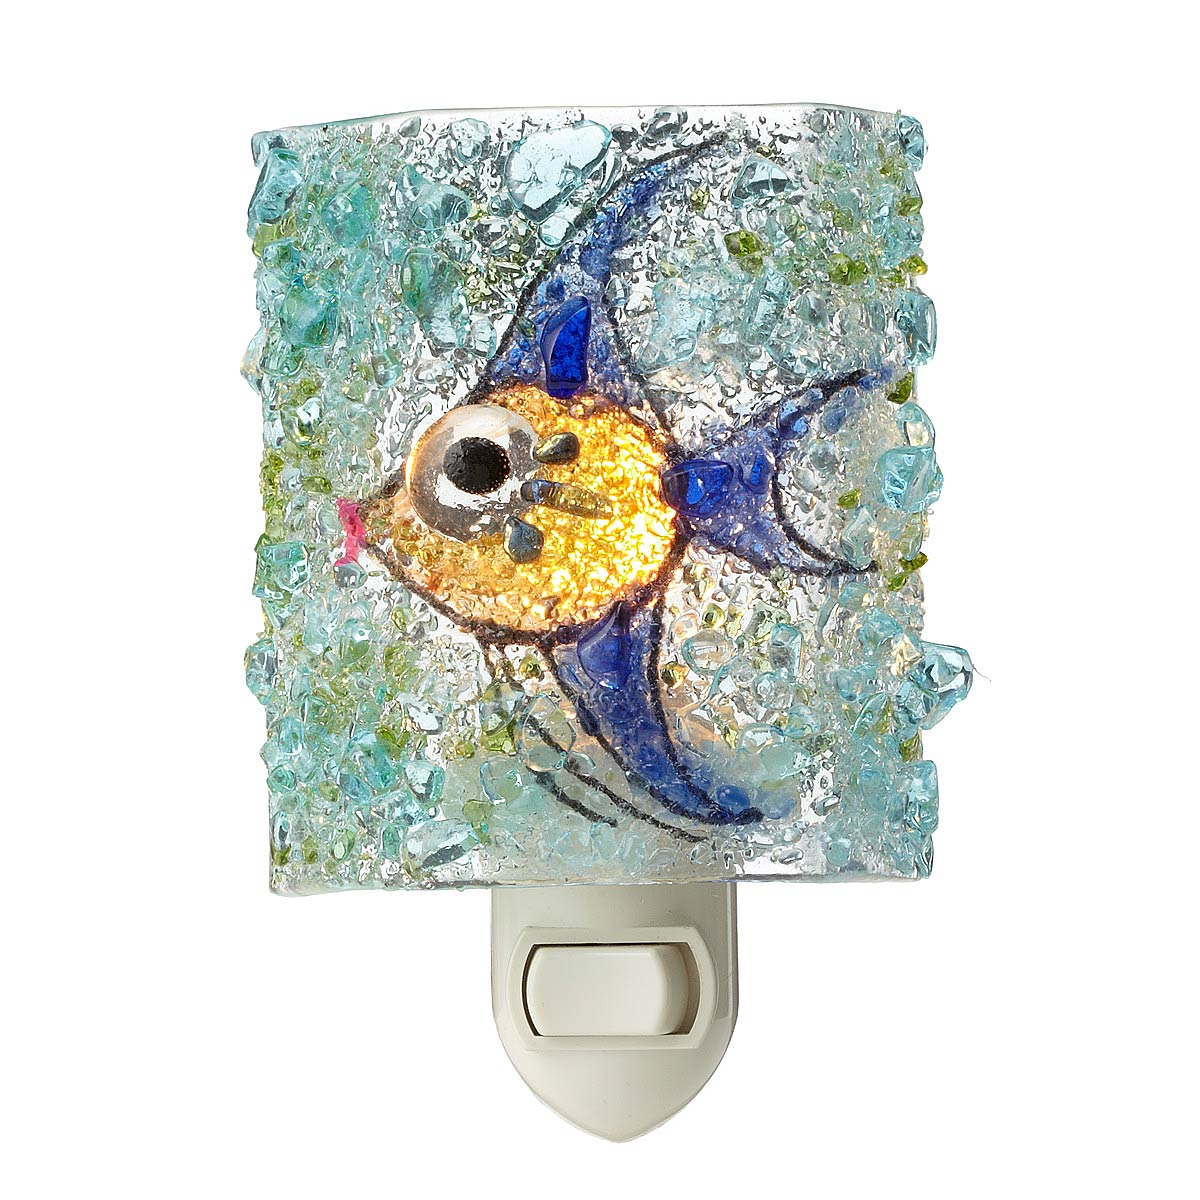 Bathroom Fish Decor Recycled Glass Angel Fish Night Light Children Bedroom Beach